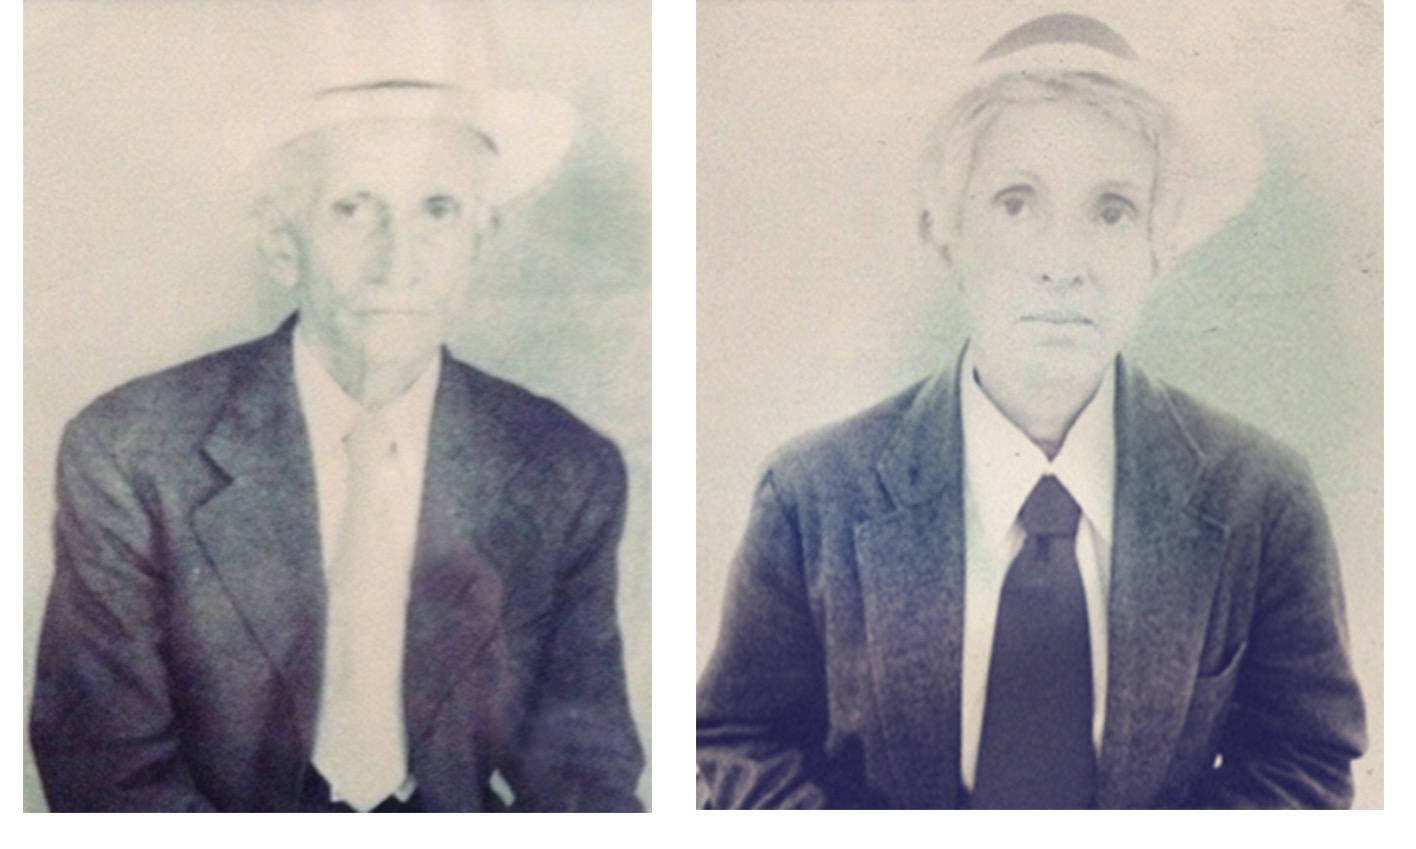 My great grandfather Thomas and I, 2016 Intervened photographs.  7.87 x 11.81 inches. 20 x 30 cm.